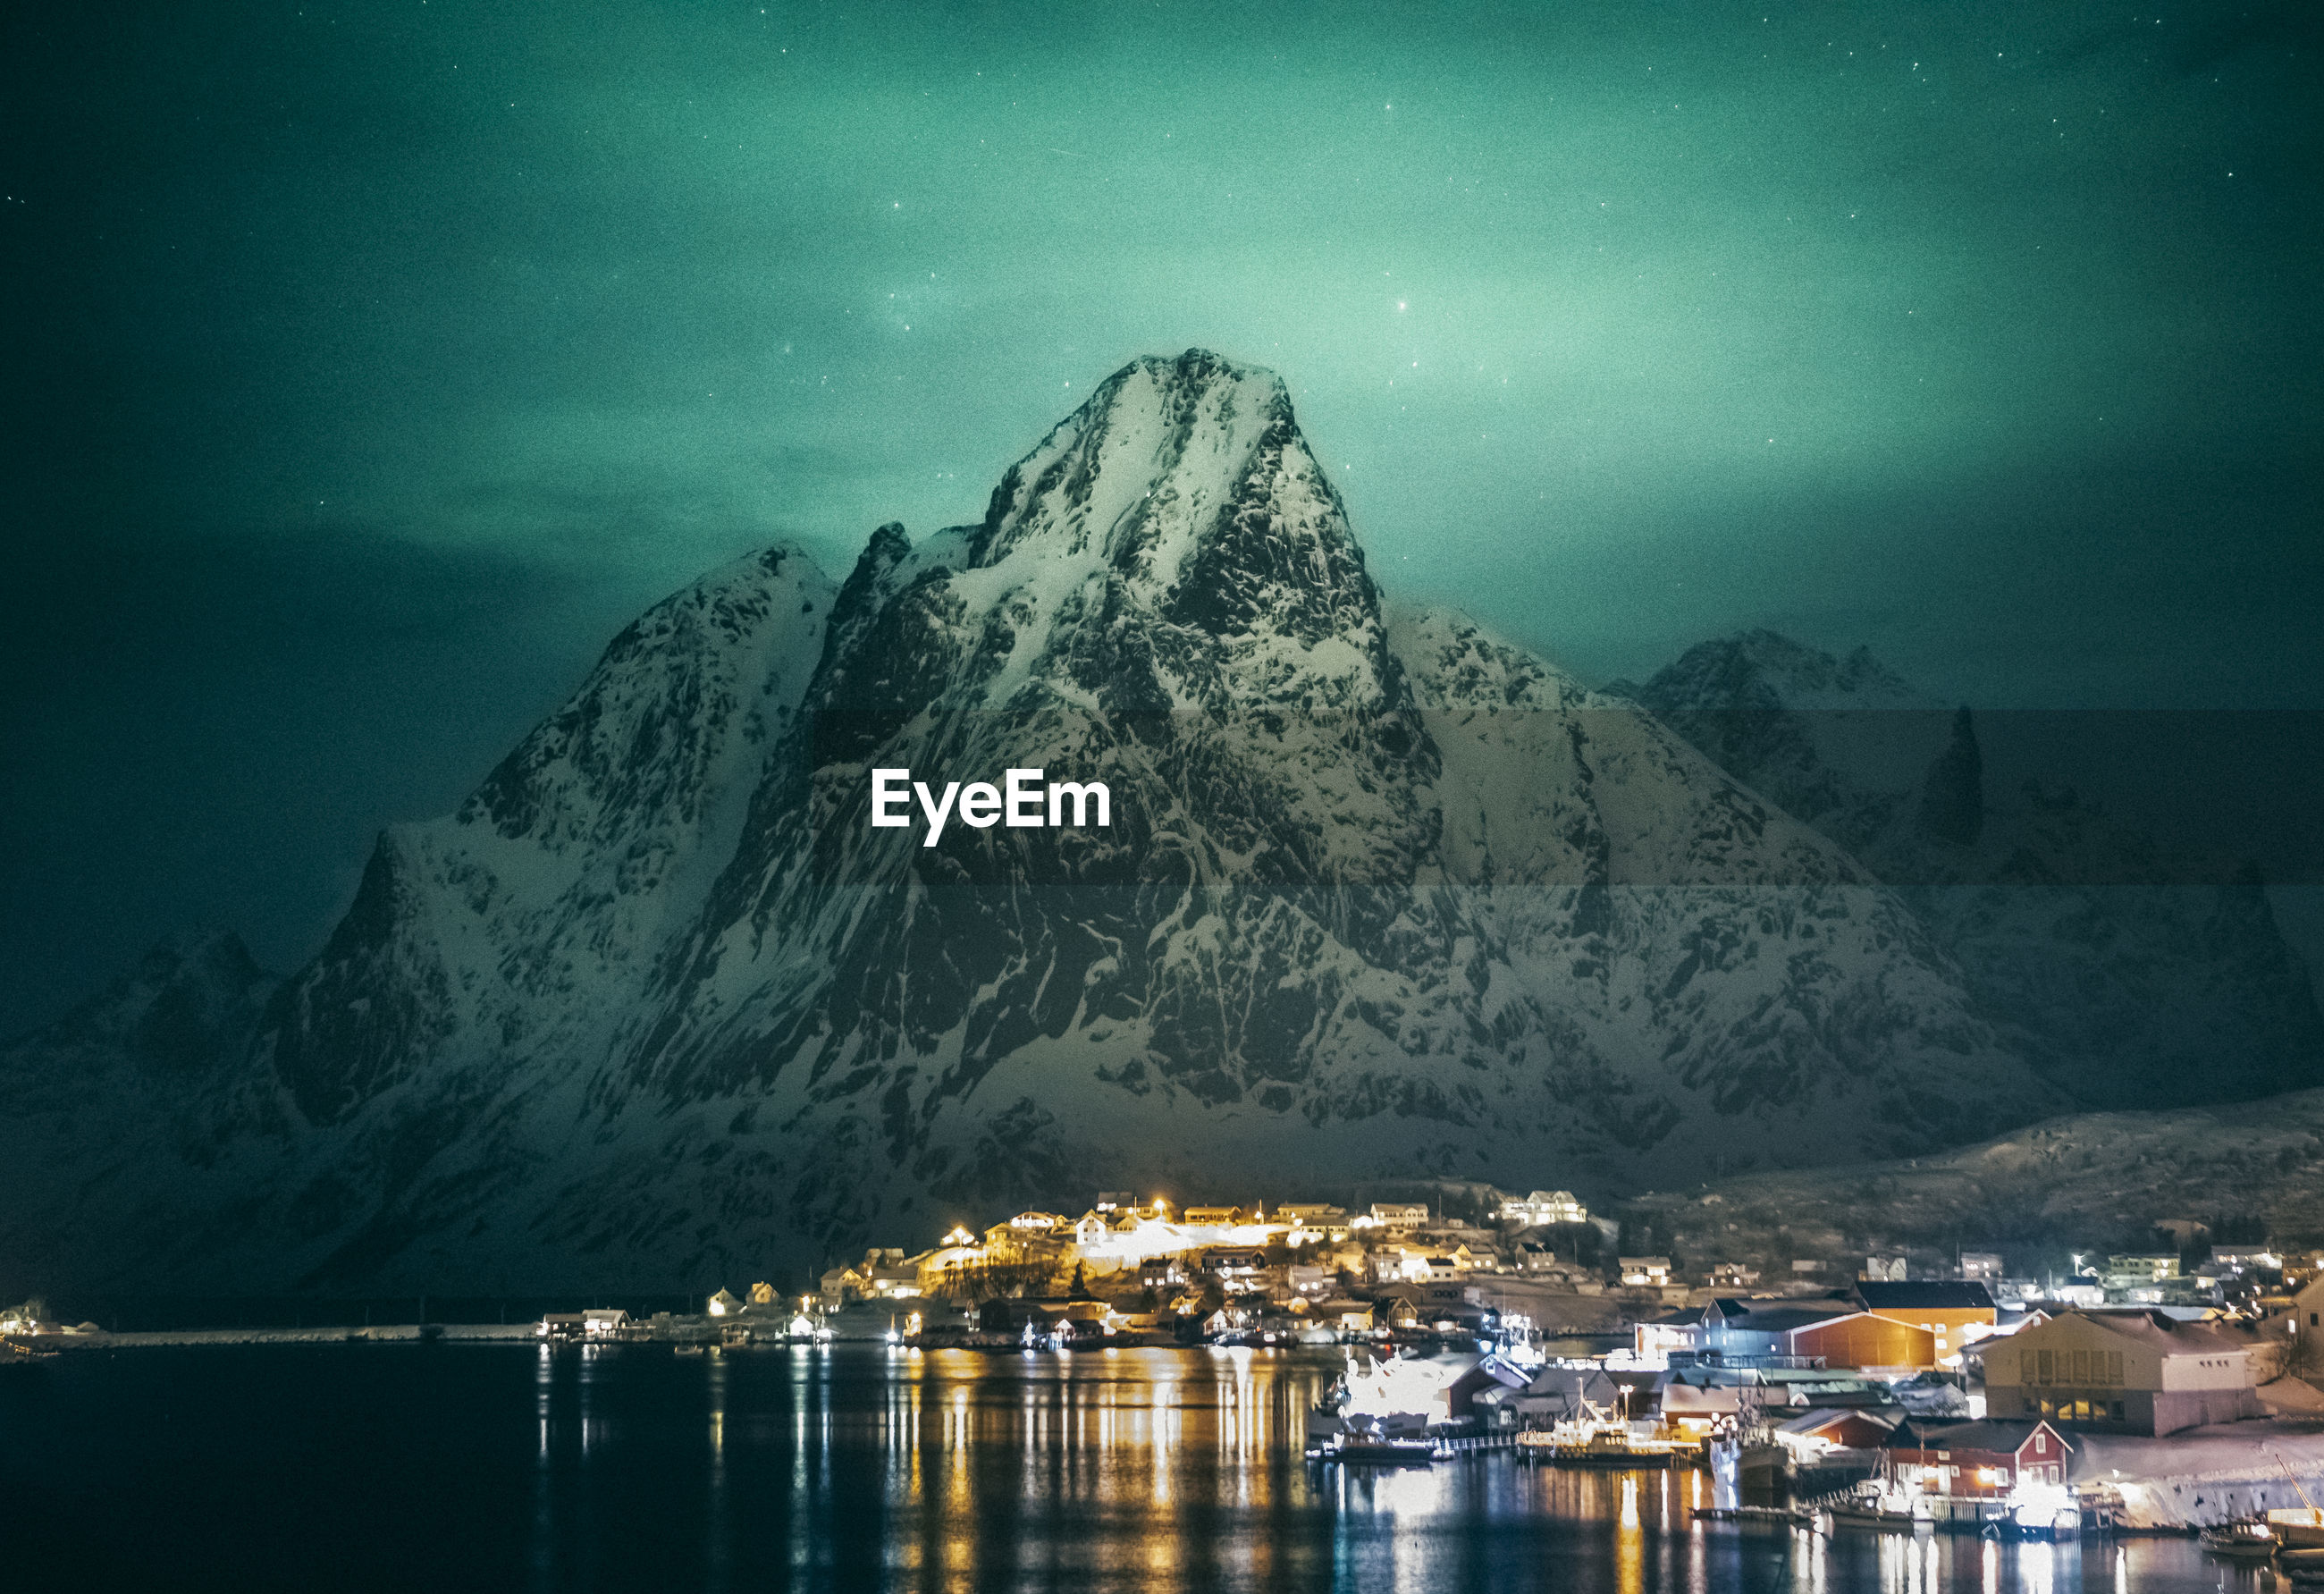 Scenic view of sea by snowcapped mountains against sky at night